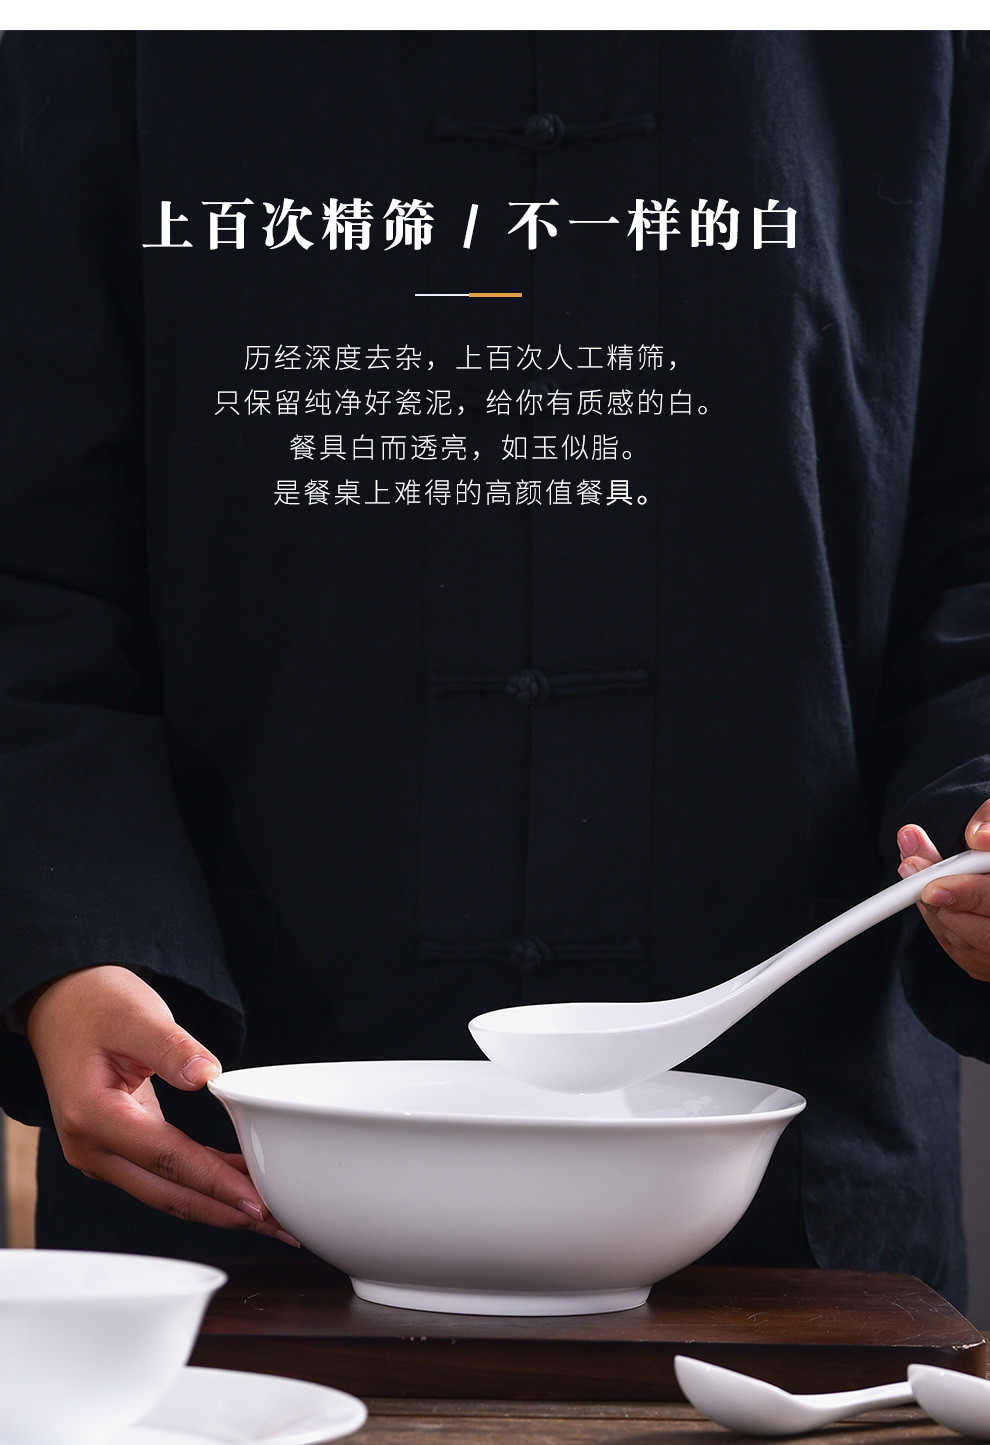 Jingdezhen flagship store of Chinese ceramic dishes suit white porcelain tableware household eat bowl dish dish soup bowl